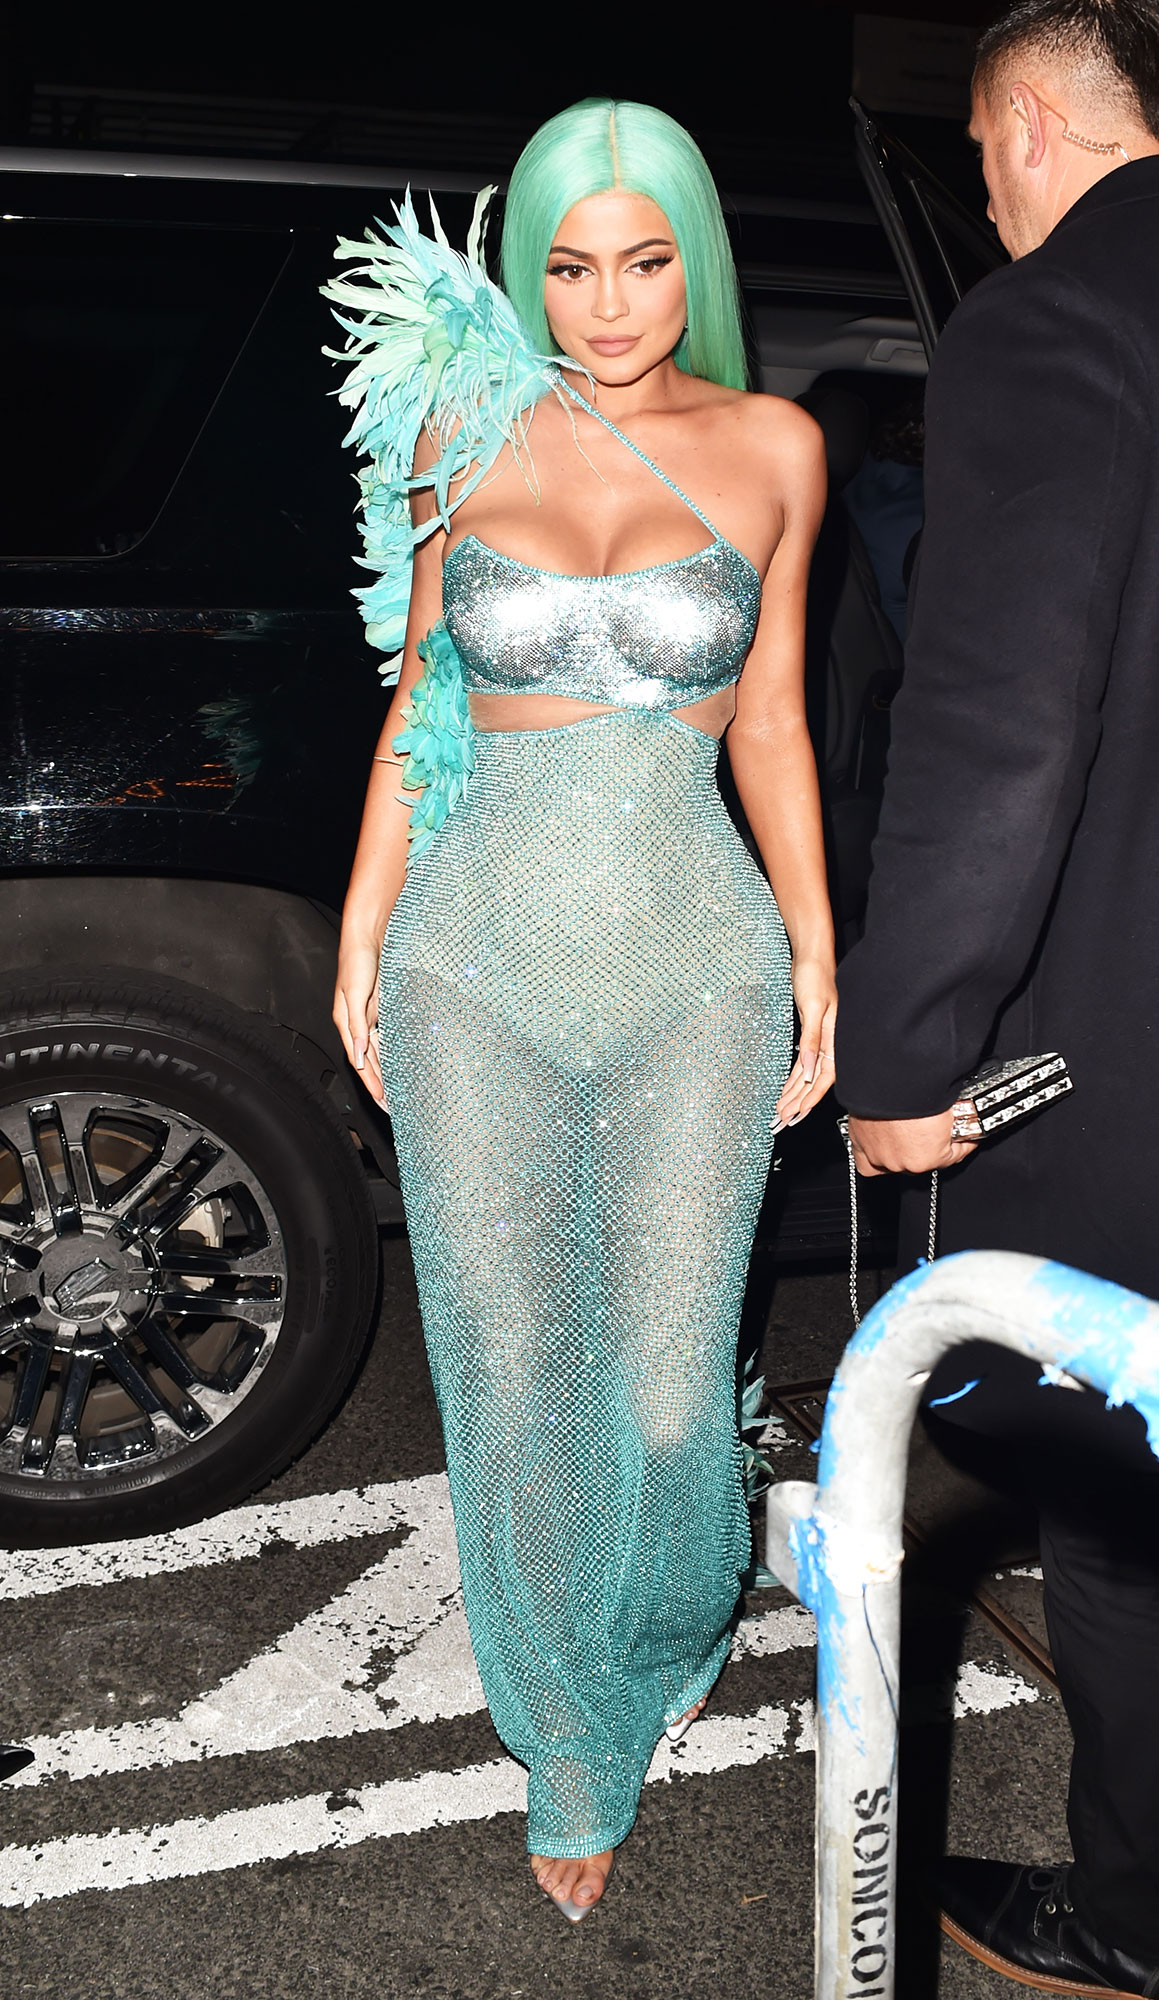 Kylie Jenner after party met gala 2019 - Looking like a real life mermaid, the Kylie Cosmetics founder wore an aqua floor-length dress covered in sequins and embellished with feathers on one sleeve. She matched her new butt-grazing wig to the dress for a major mermaid-like effect.